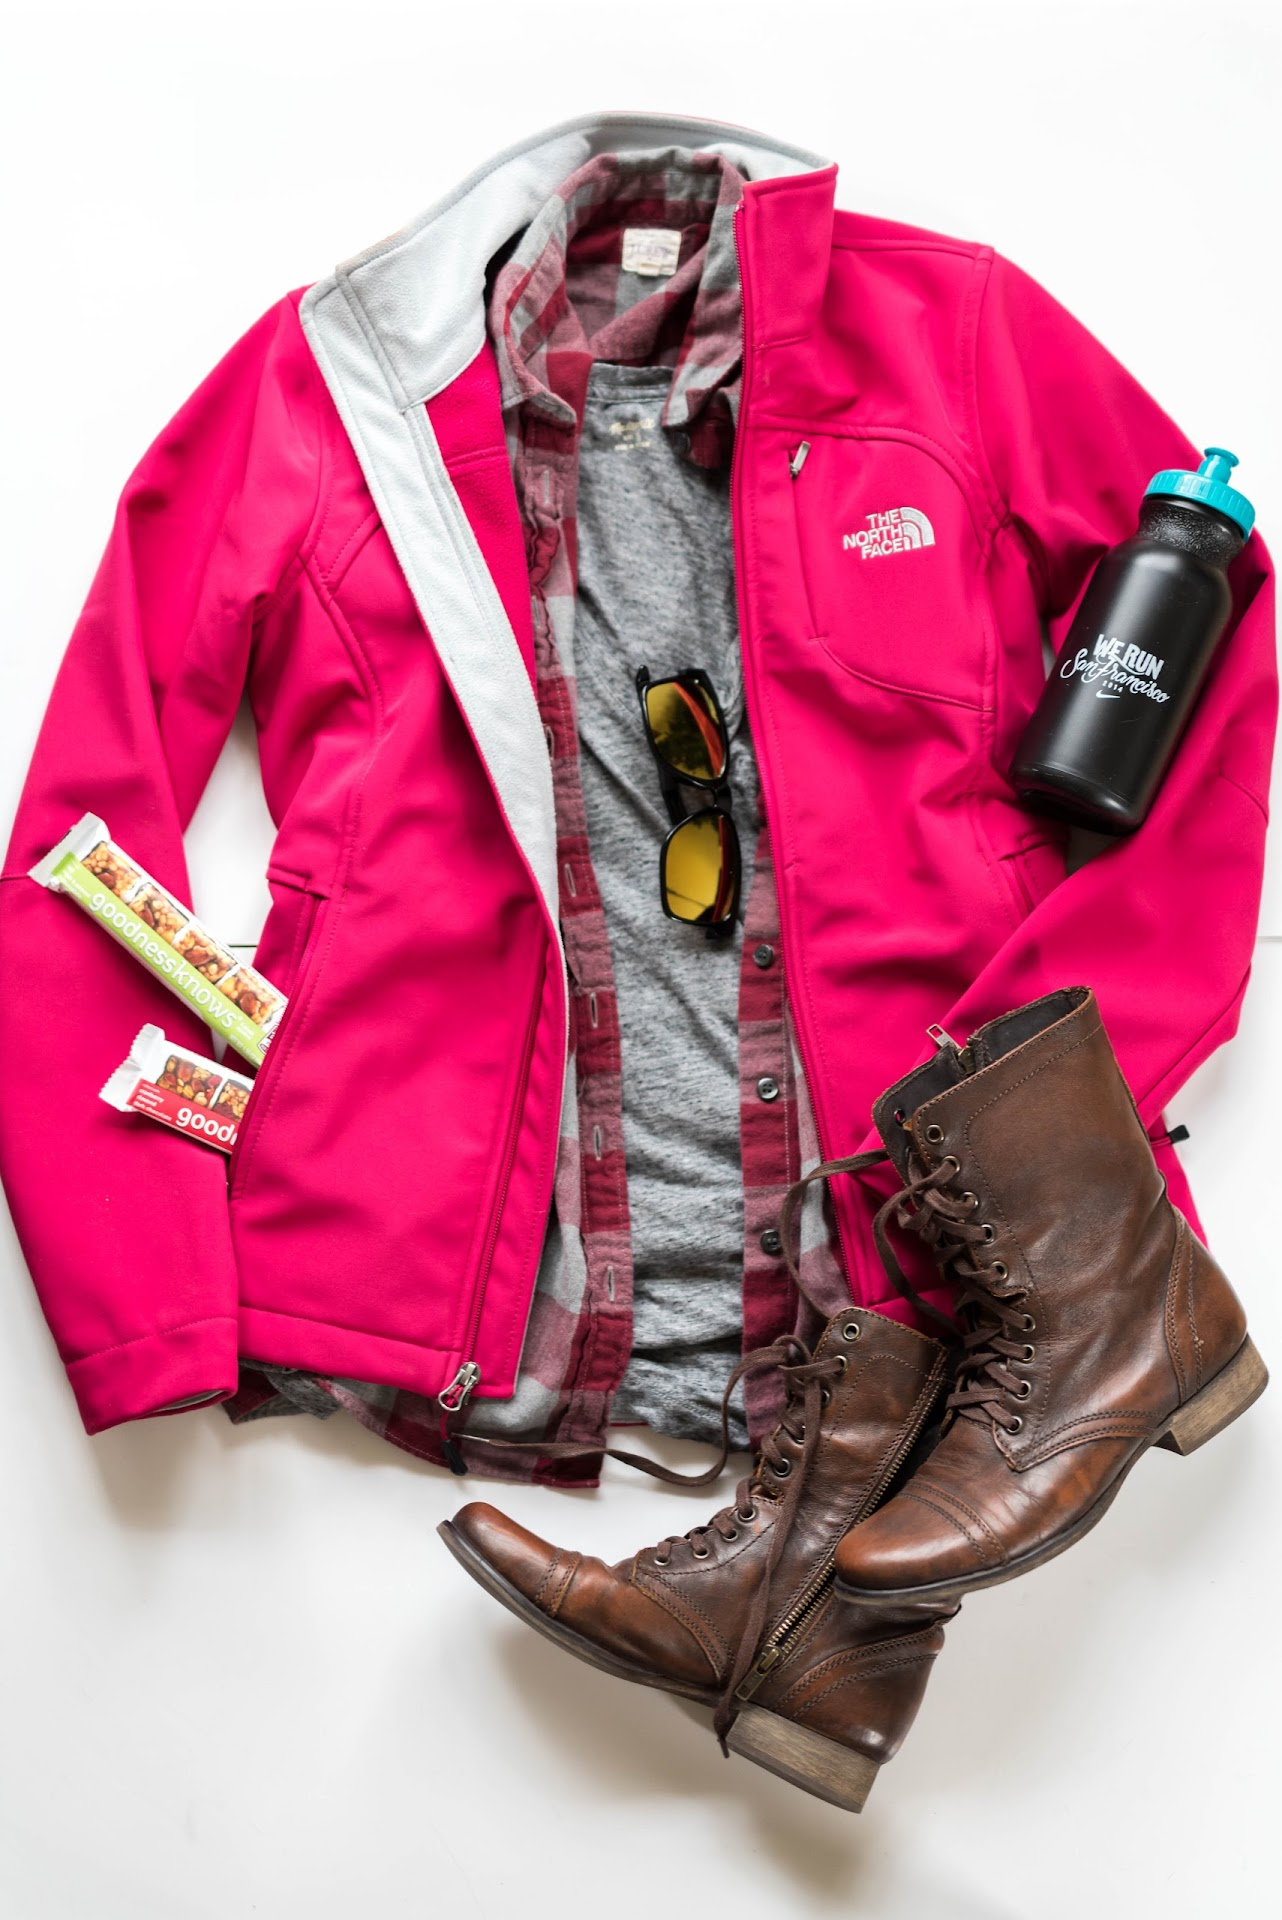 goodnessknows® snack squares, trekking outfit ideas, hiking outfit spring, hiking fashion, hiking outfit ideas, hiking ootd, what to wear when you go hiking, pink north face jacket, pink soft shell, madewell t-shirt, perfect t-shirt, combat boots, lds modest mormon fashion blogger